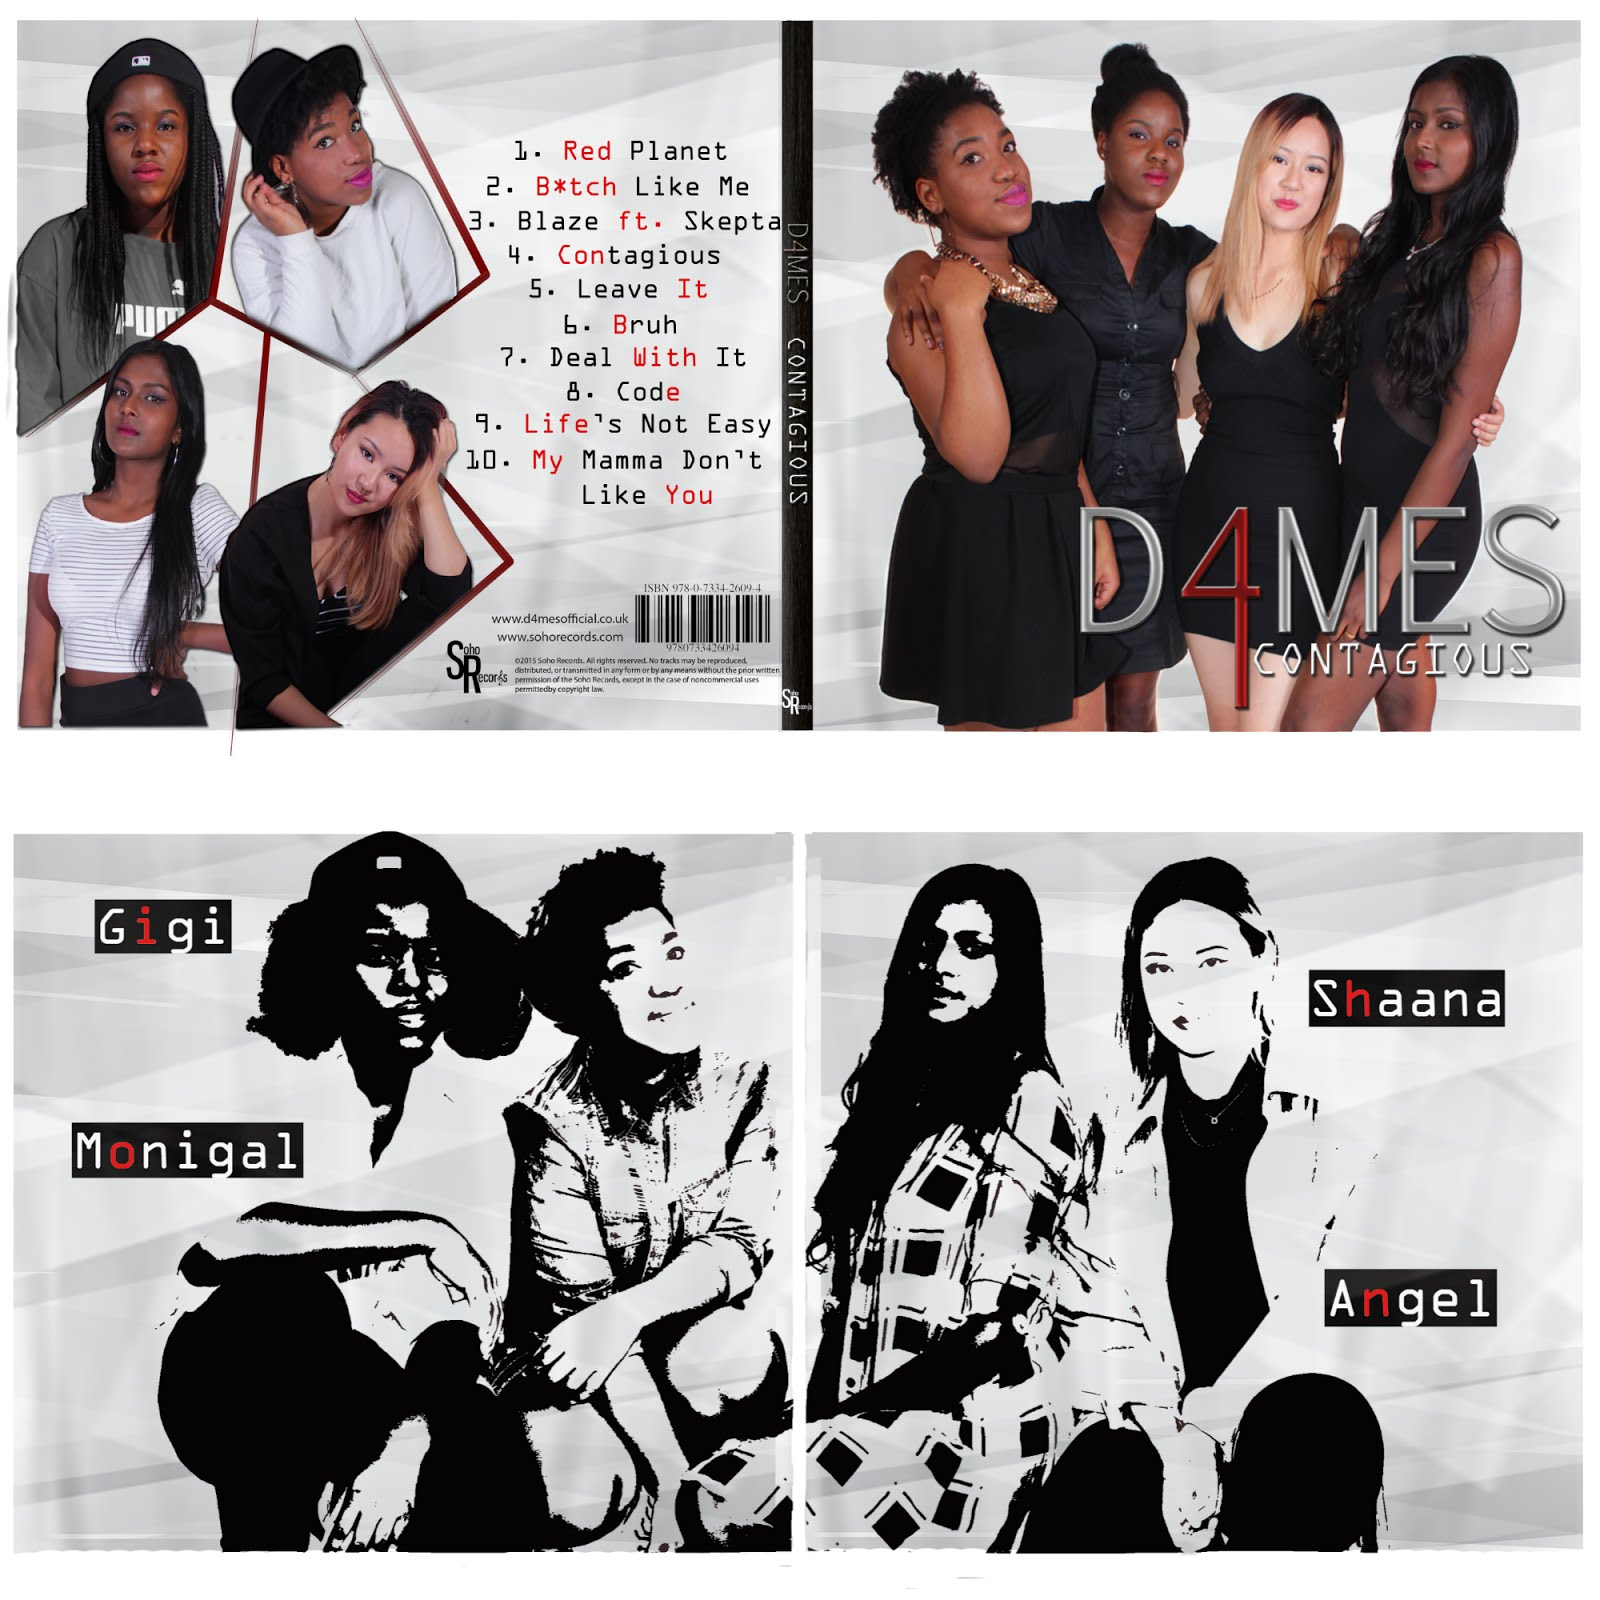 Group 3 - Digipak